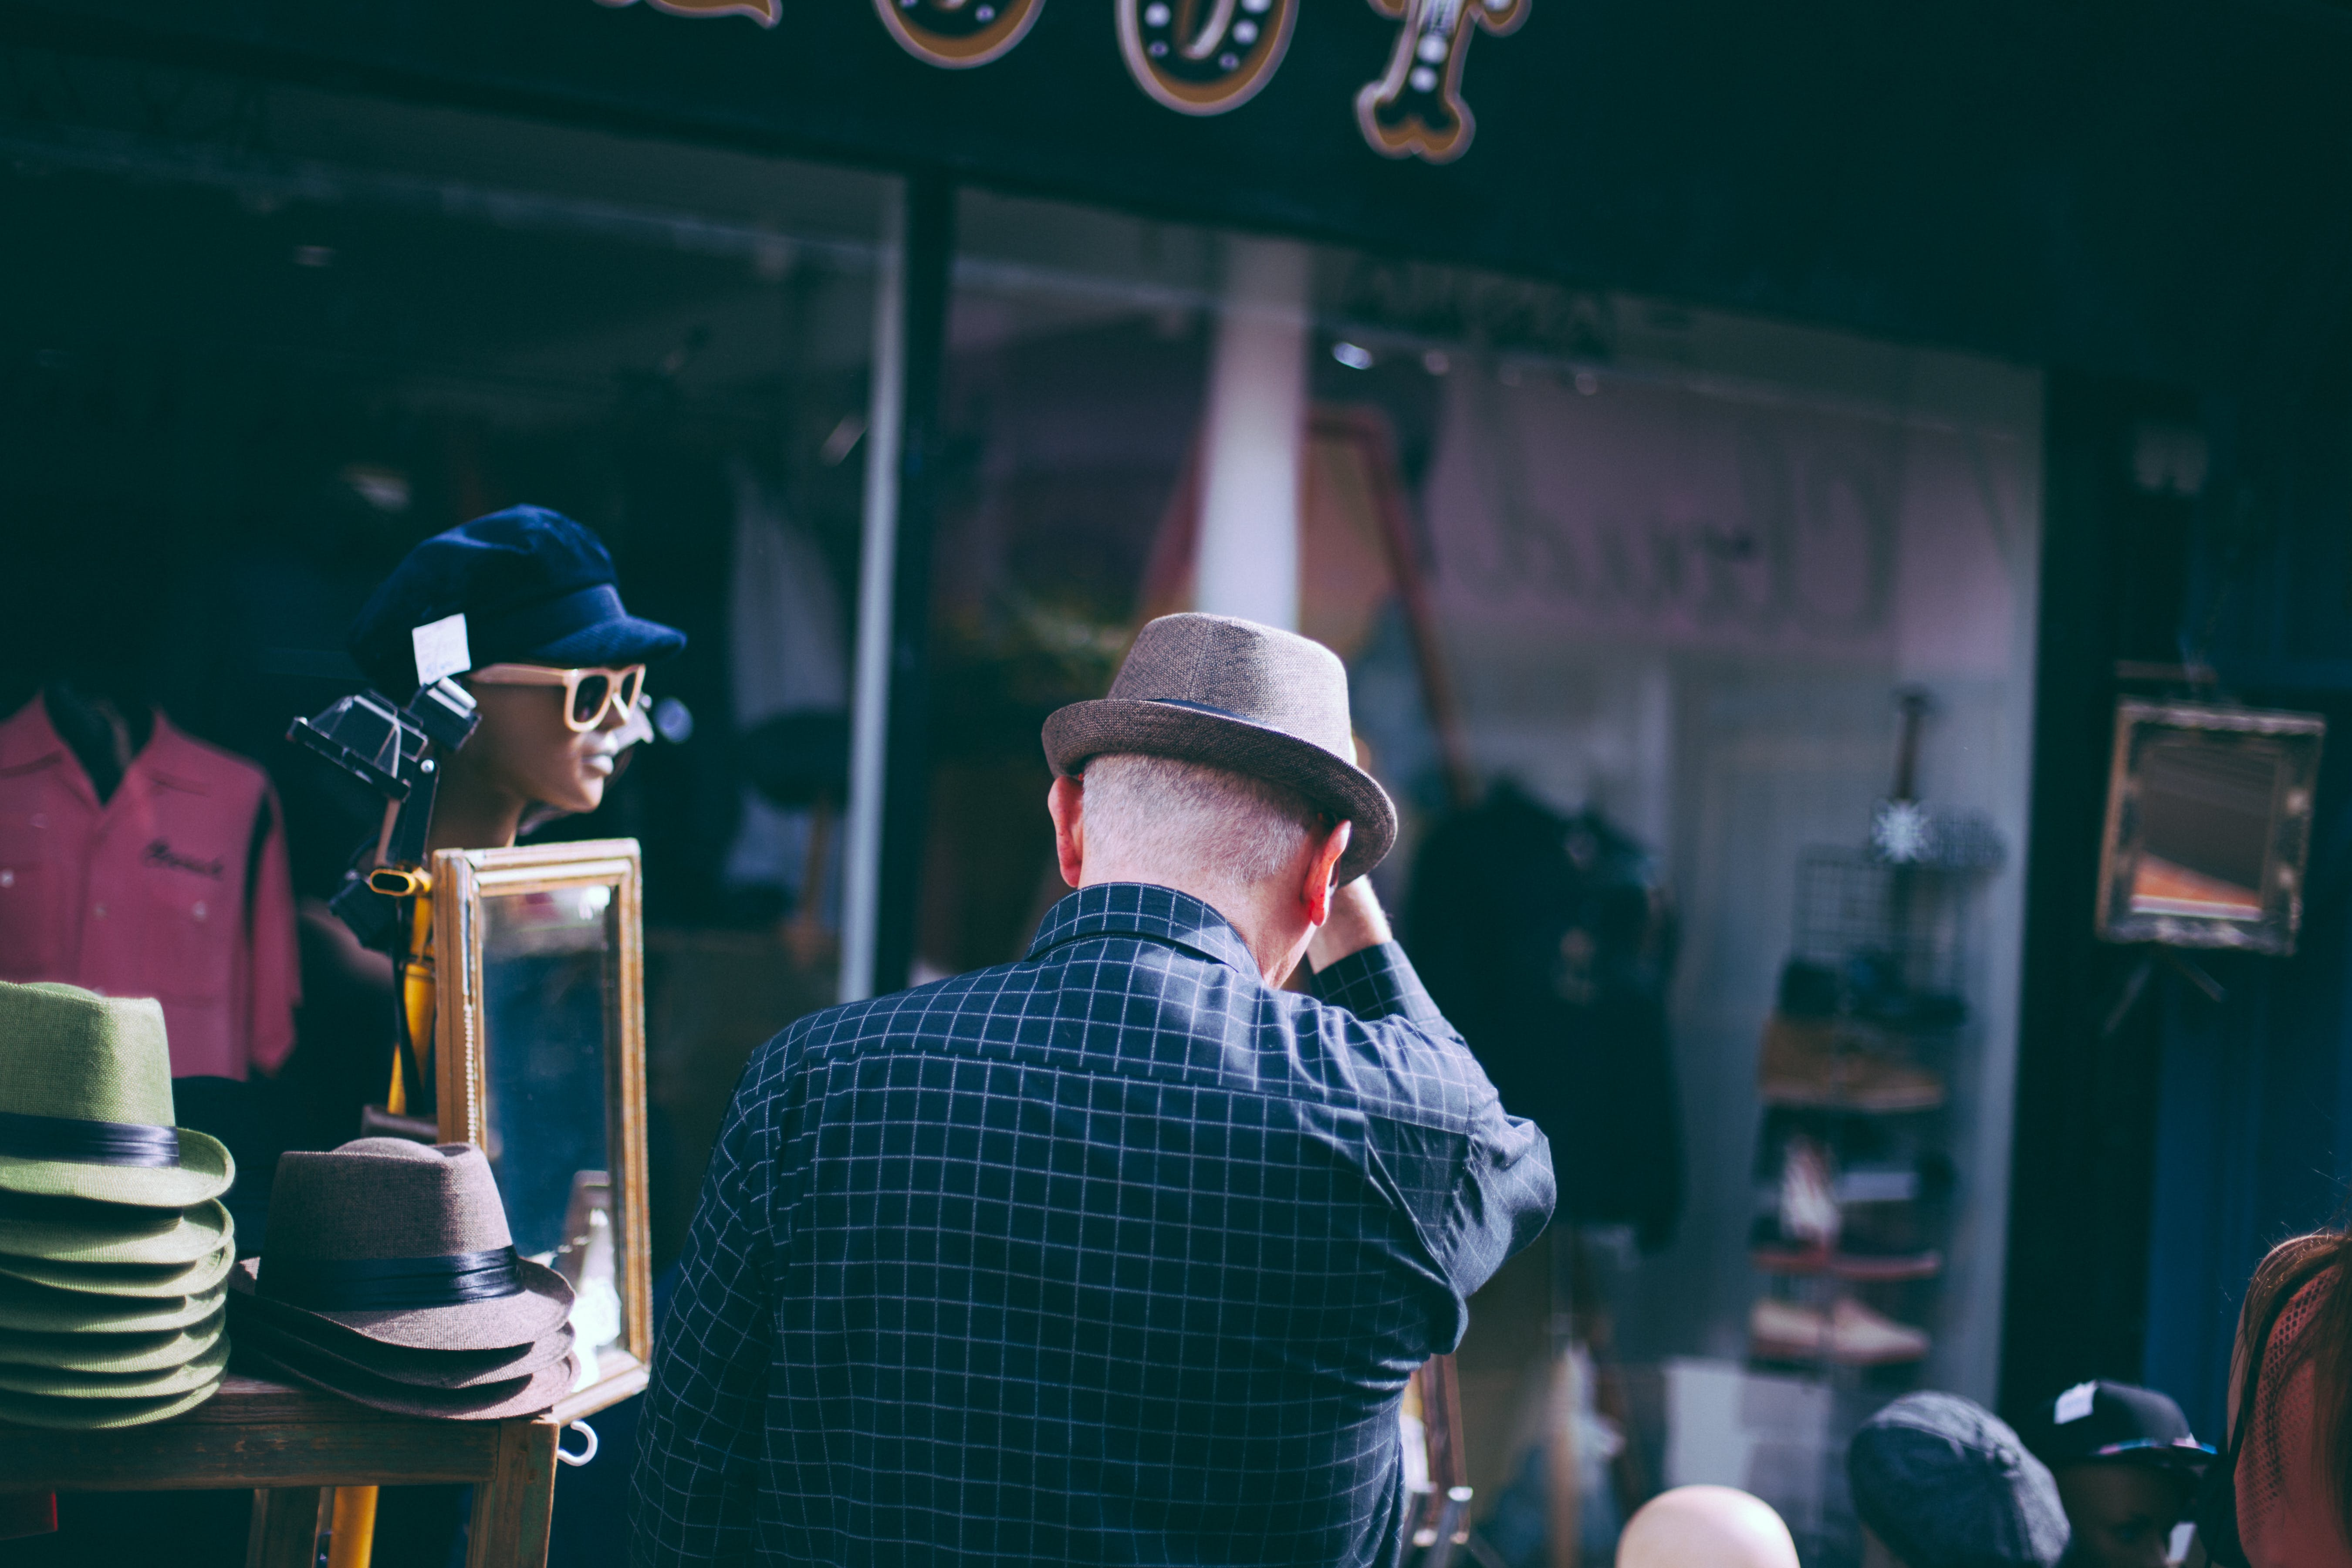 Man in Checkered Long Sleeve and Fedora Hat